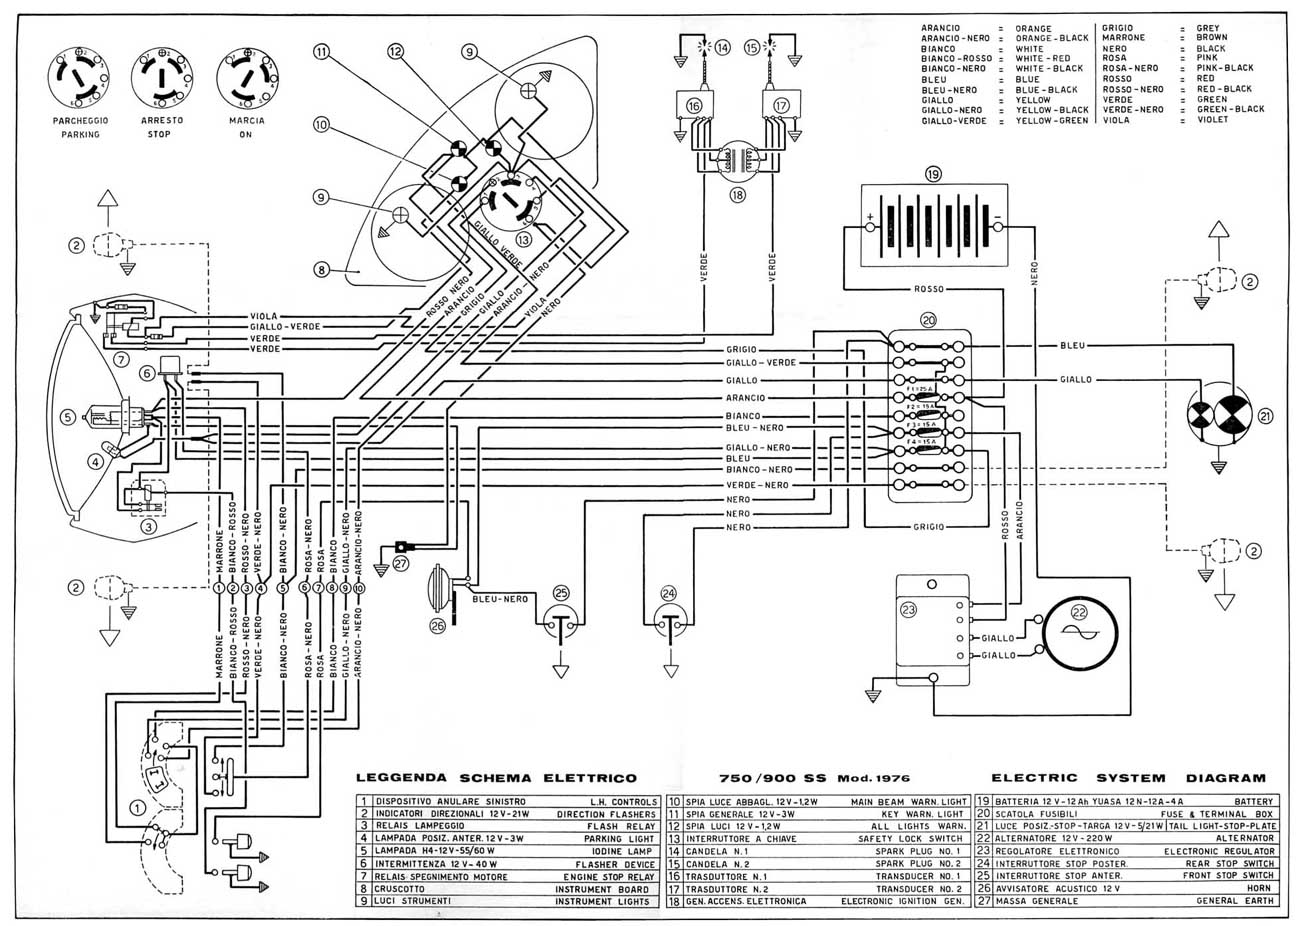 Tremendous Ducati Bevel Wiring Diagram Basic Electronics Wiring Diagram Wiring 101 Capemaxxcnl